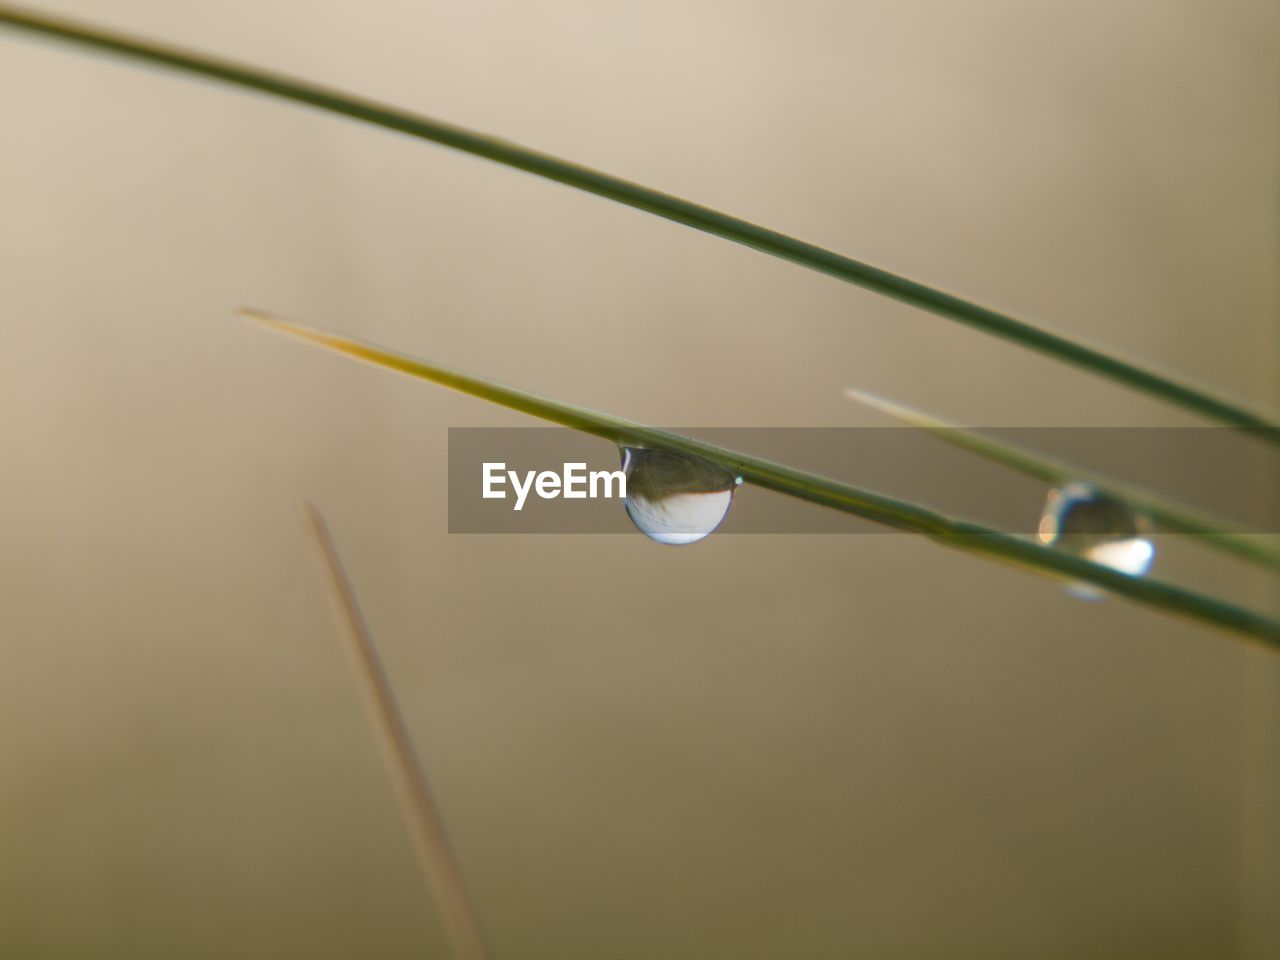 drop, close-up, water, nature, plant, no people, vulnerability, focus on foreground, fragility, growth, selective focus, beauty in nature, wet, plant stem, blade of grass, grass, day, plant part, leaf, dew, rain, raindrop, purity